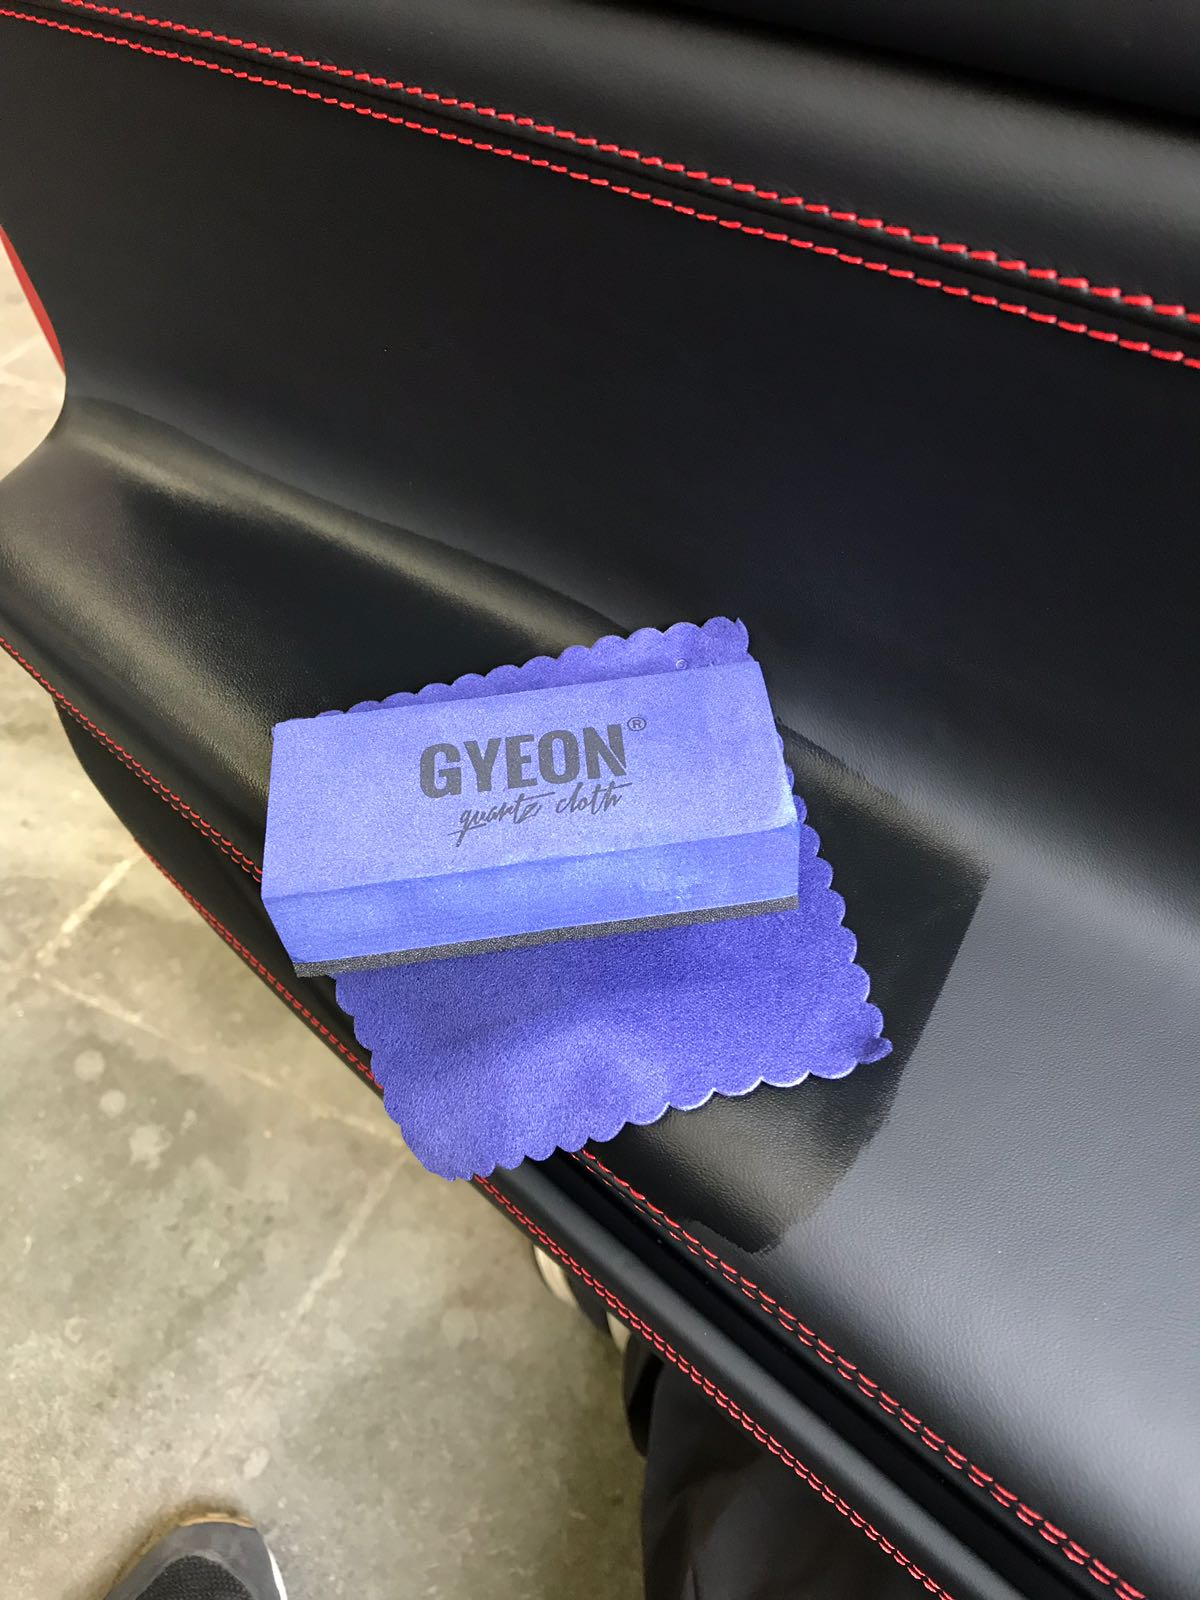 Gyeon Quartz Bruxelles